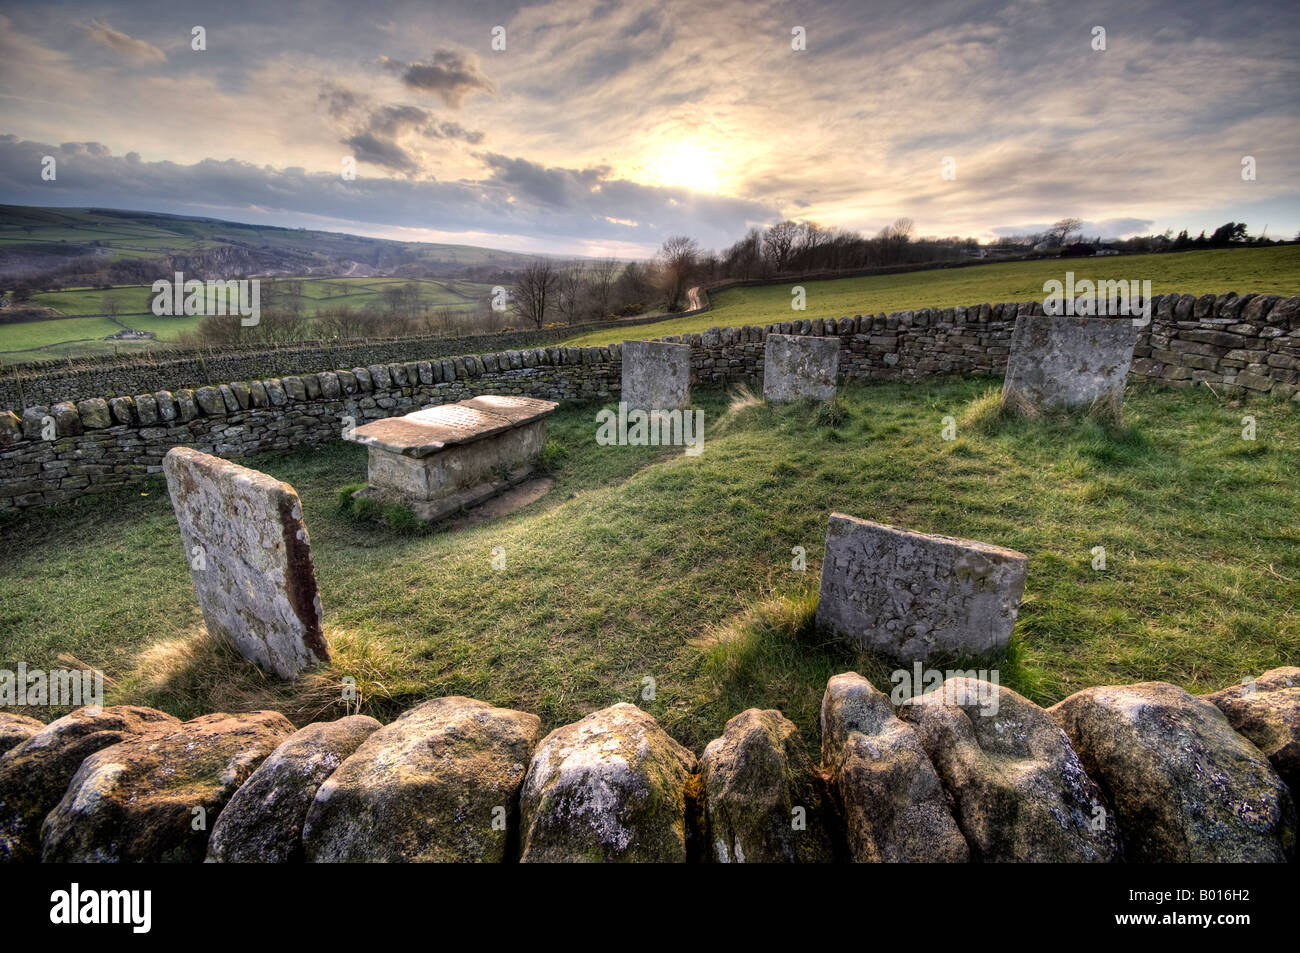 'Riley Graves' at Eyam in Derbyshire  Great Britain - Stock Image